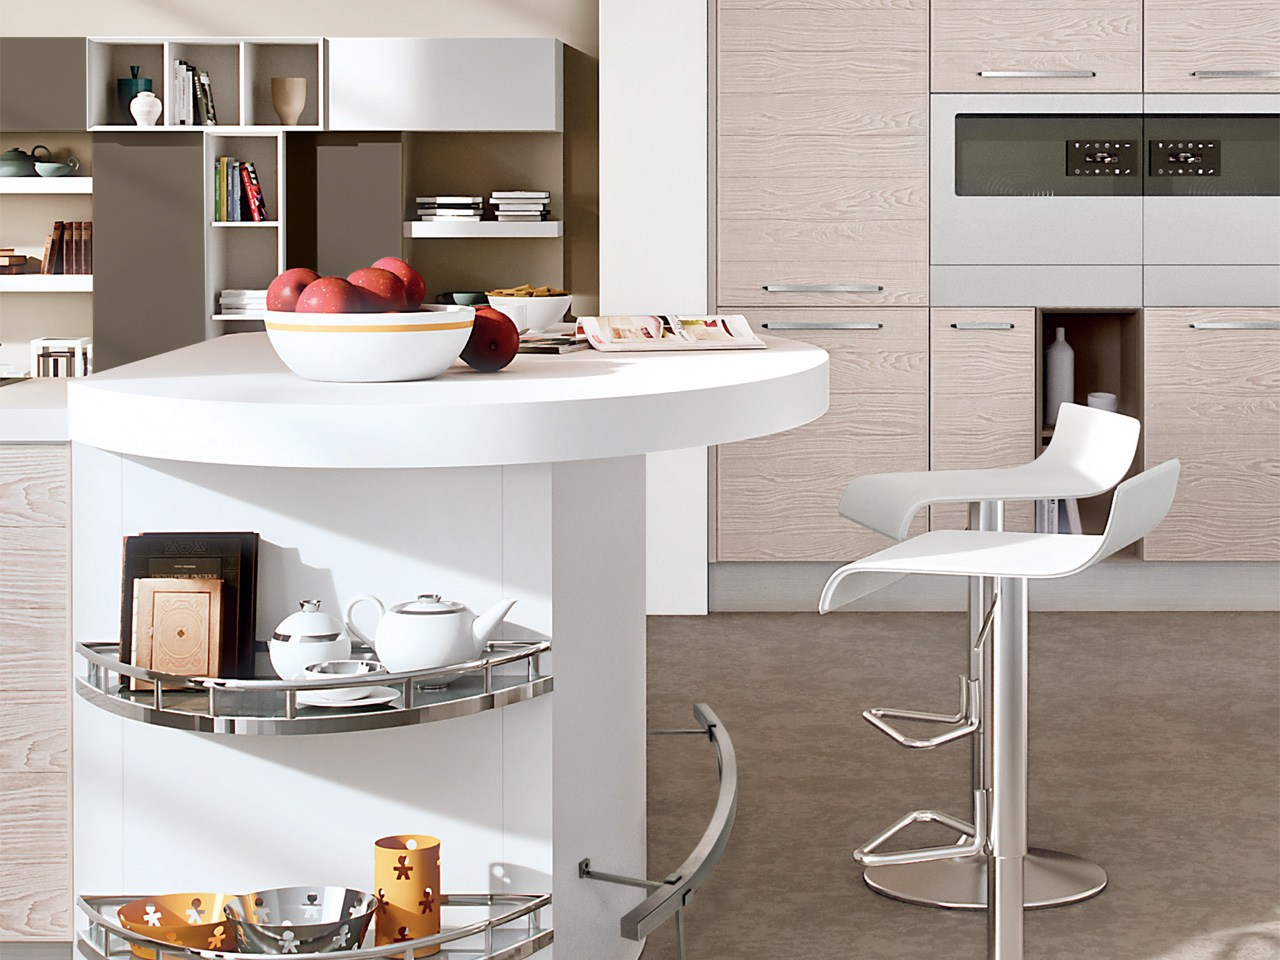 ADELE PROJECT   厨房By Cucine Lube